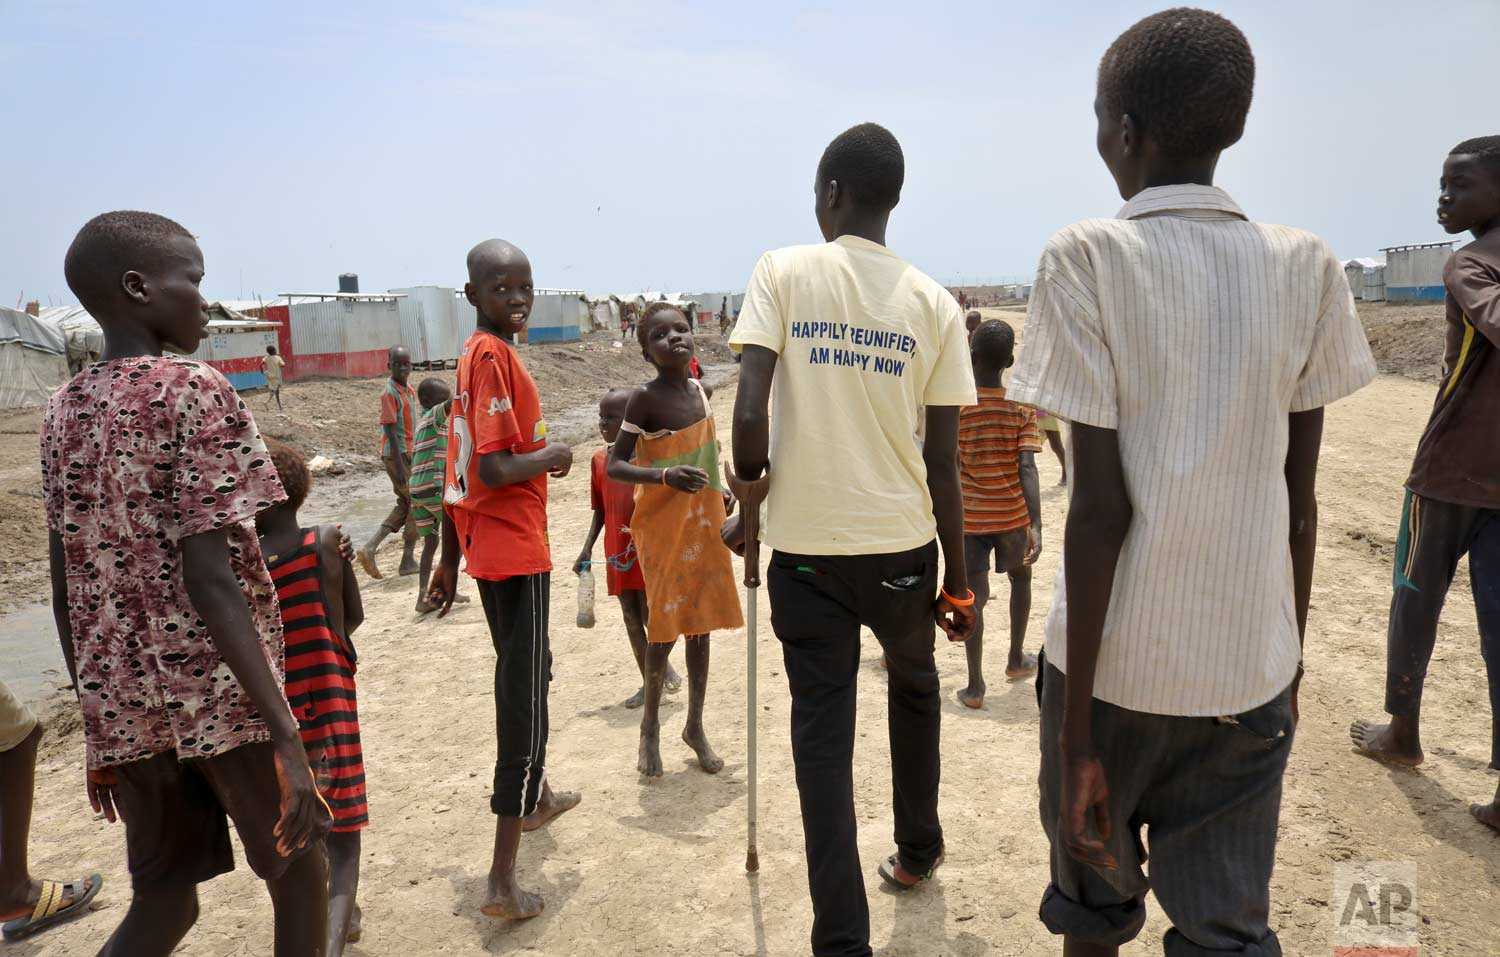 In this photo taken Friday, May 26, 2017, former child soldier James, accompanied by one of his sisters and friends, walks towards his mother's house to be reunited and see her for the first time in 3 years, at a protection of civilians site in Bentiu, South Sudan. (AP Photo/Sam Mednick)